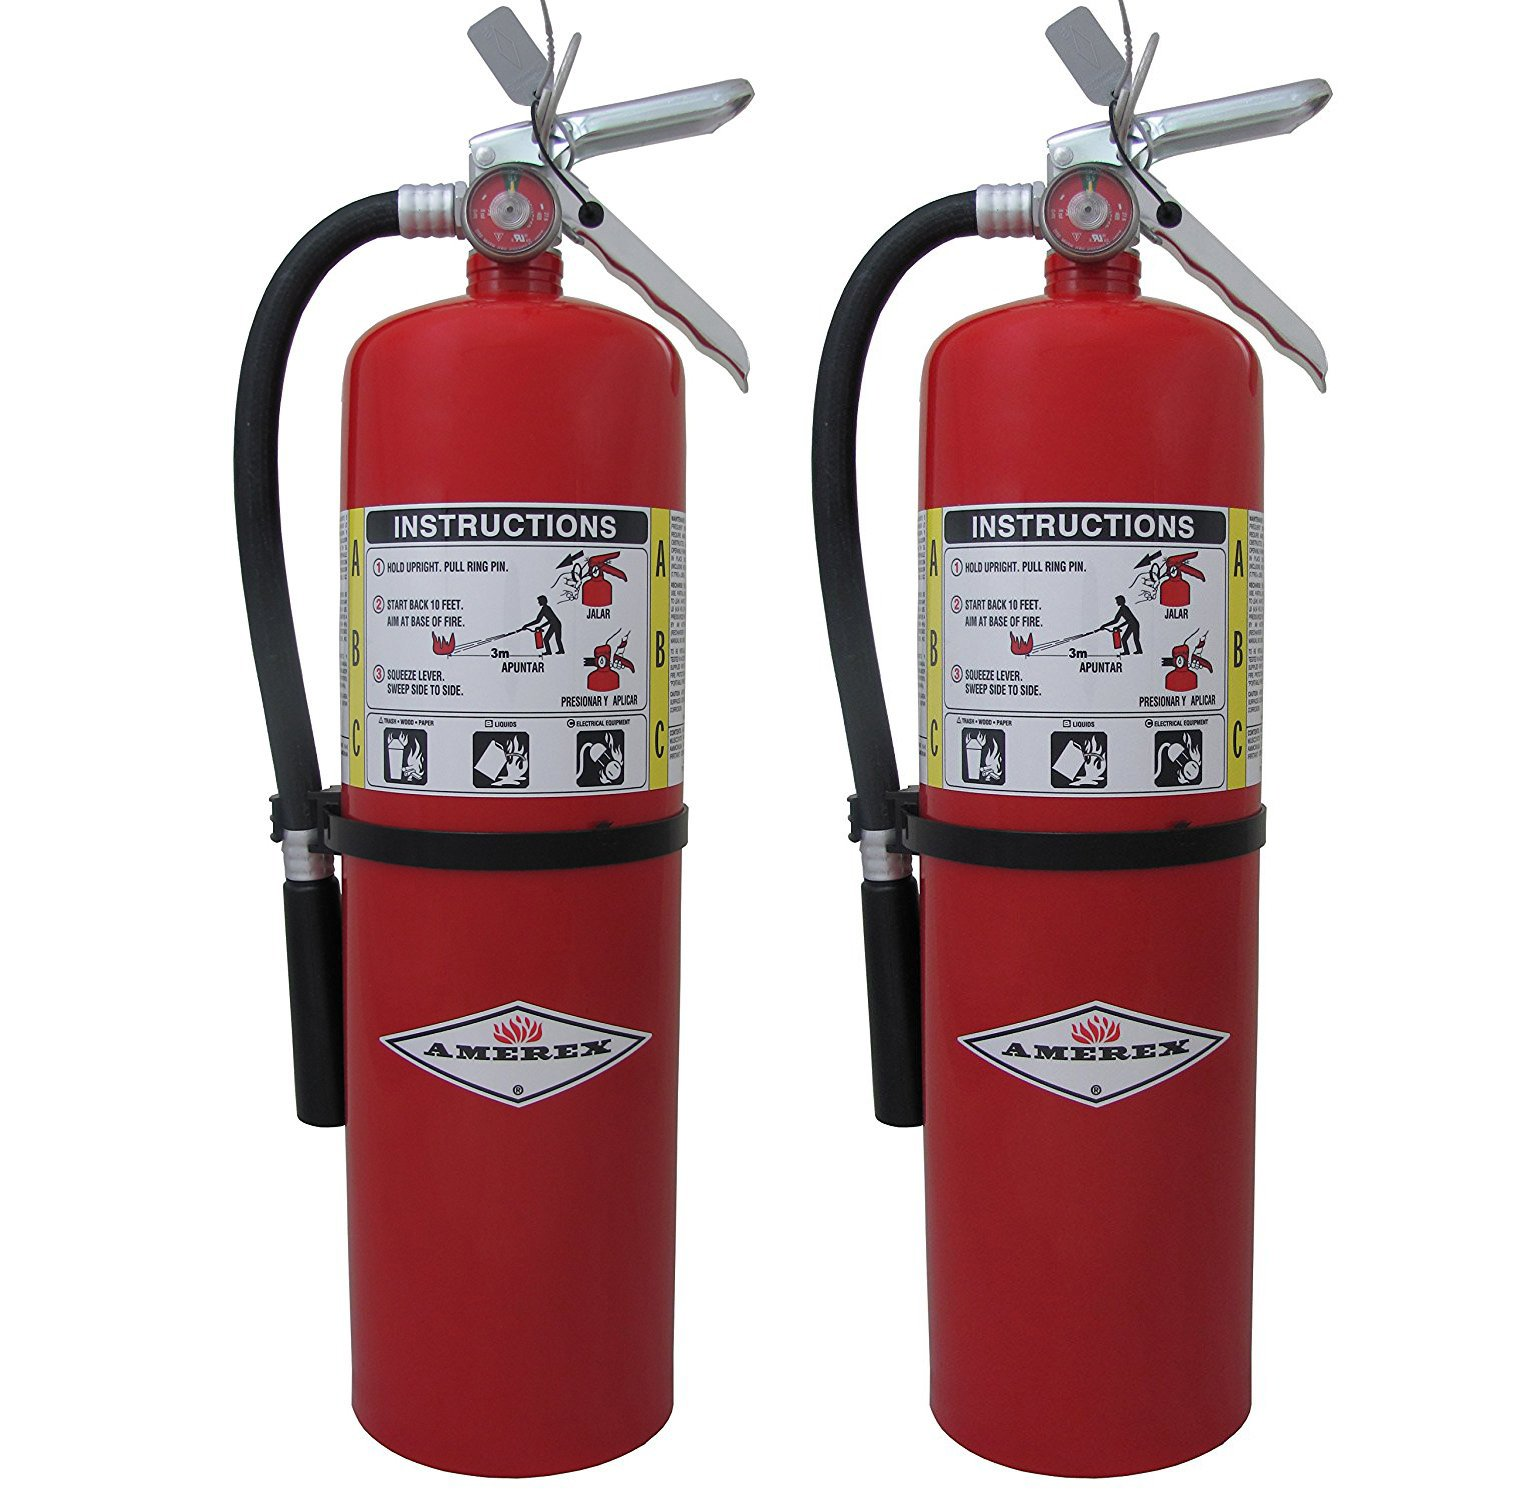 10lb ABC Dry Chemical Class A:B:C Fire Extinguisher (2, 2 pounds)